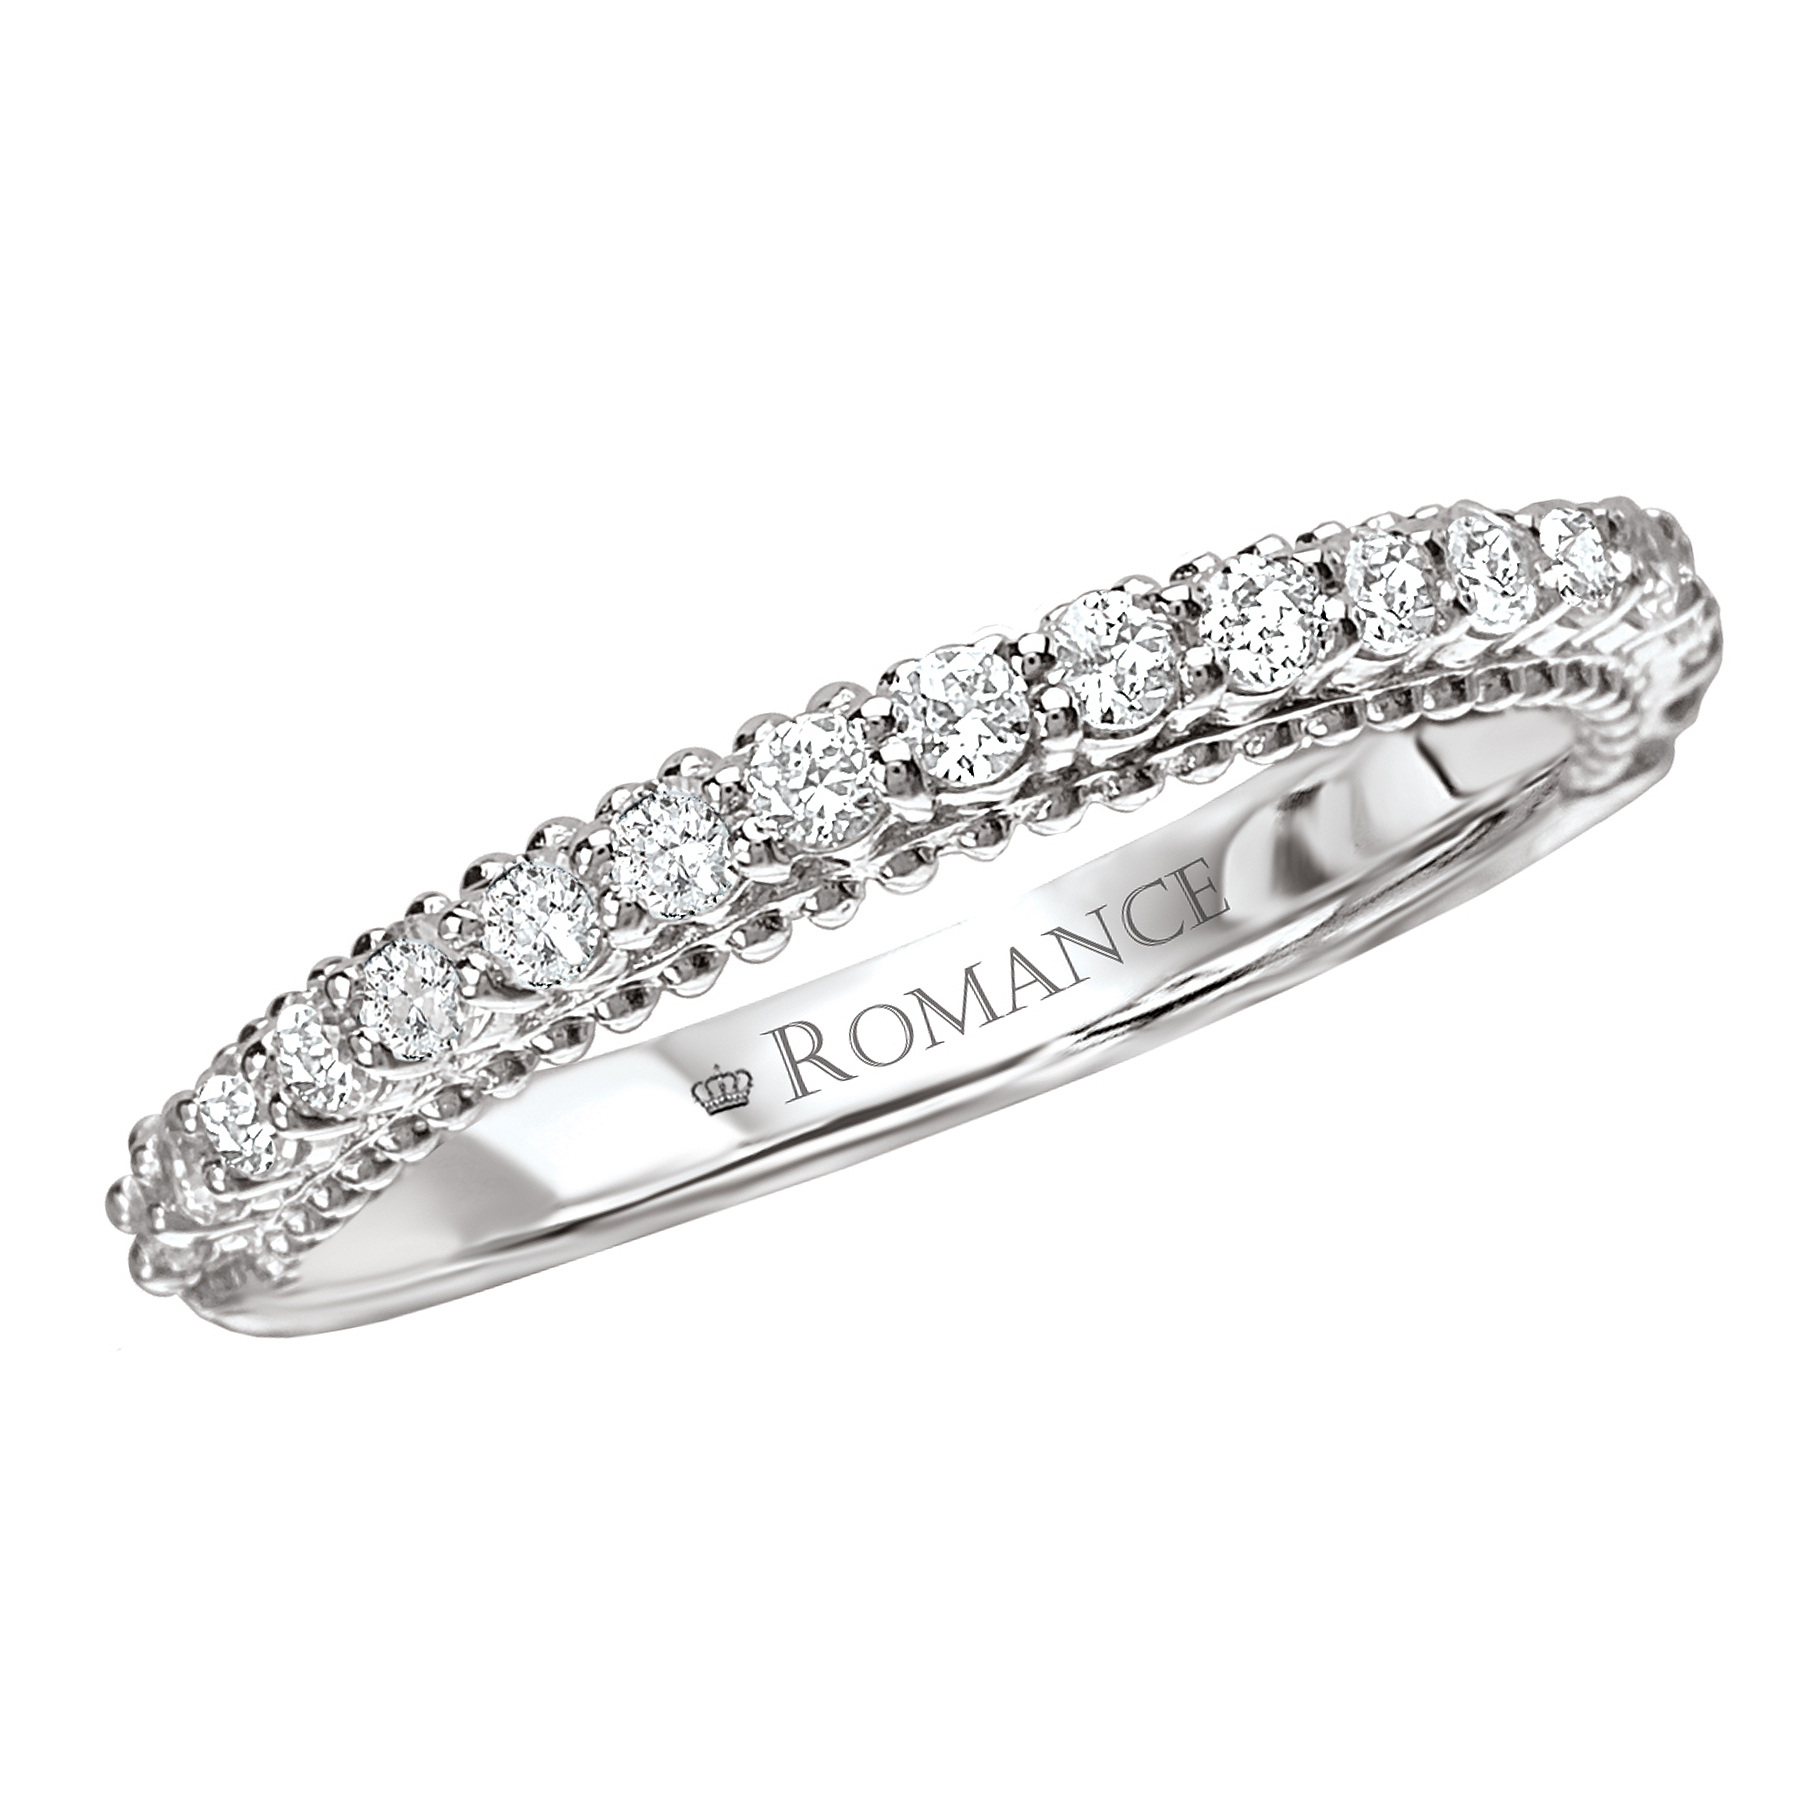 Romance Wedding Bands 117321-W product image